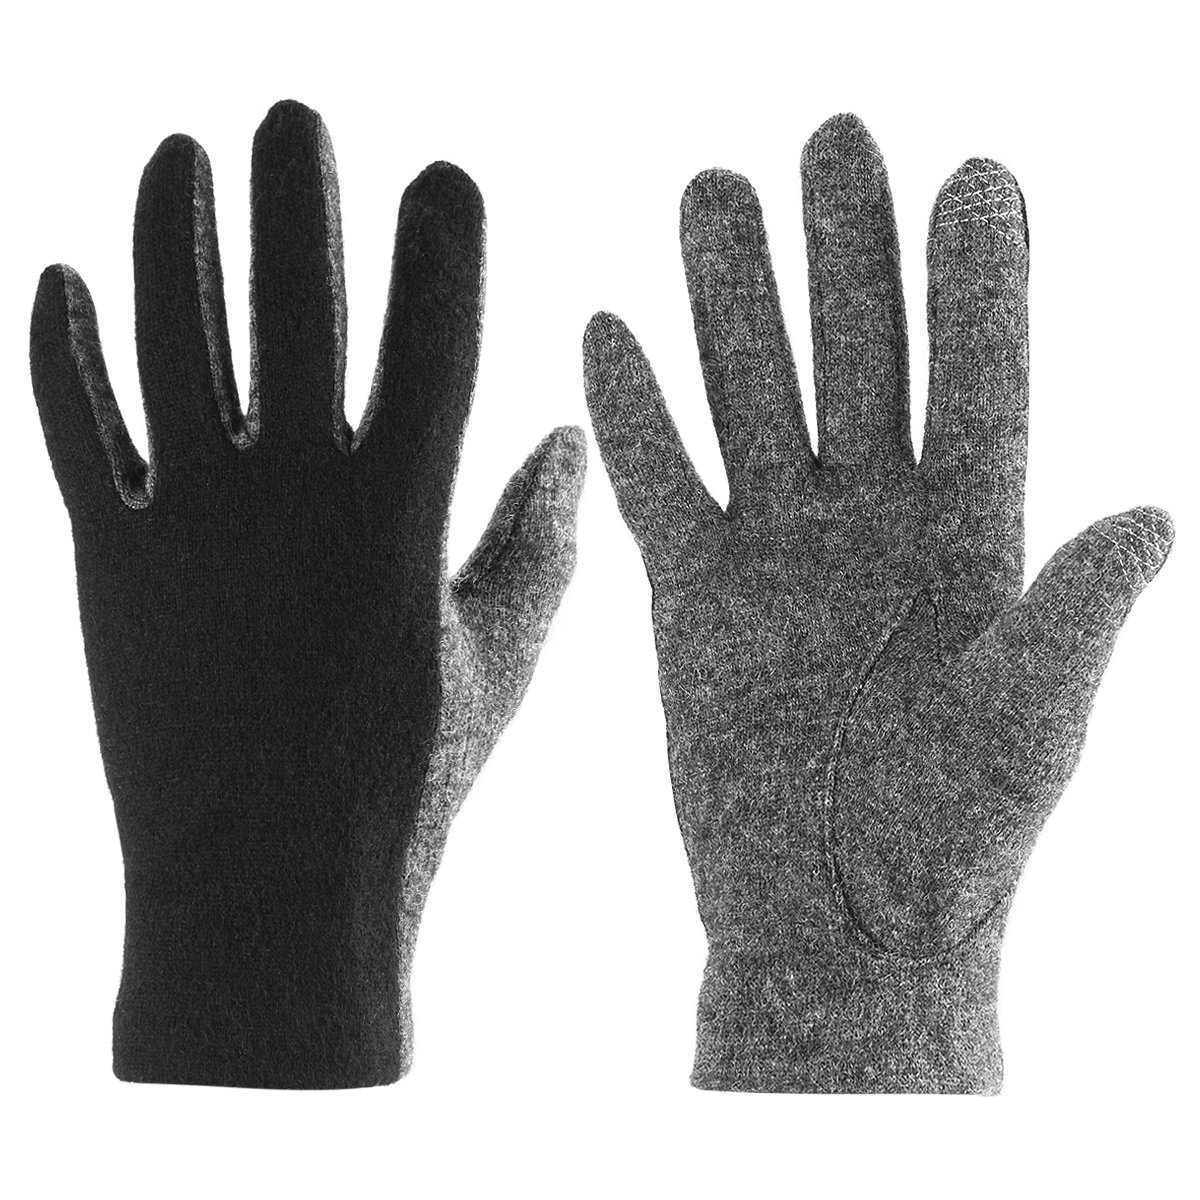 J & J Women Touchscreen Wool Gloves for Cold Weather Daily Commute Driving Walking Running Dog Walking (Black)